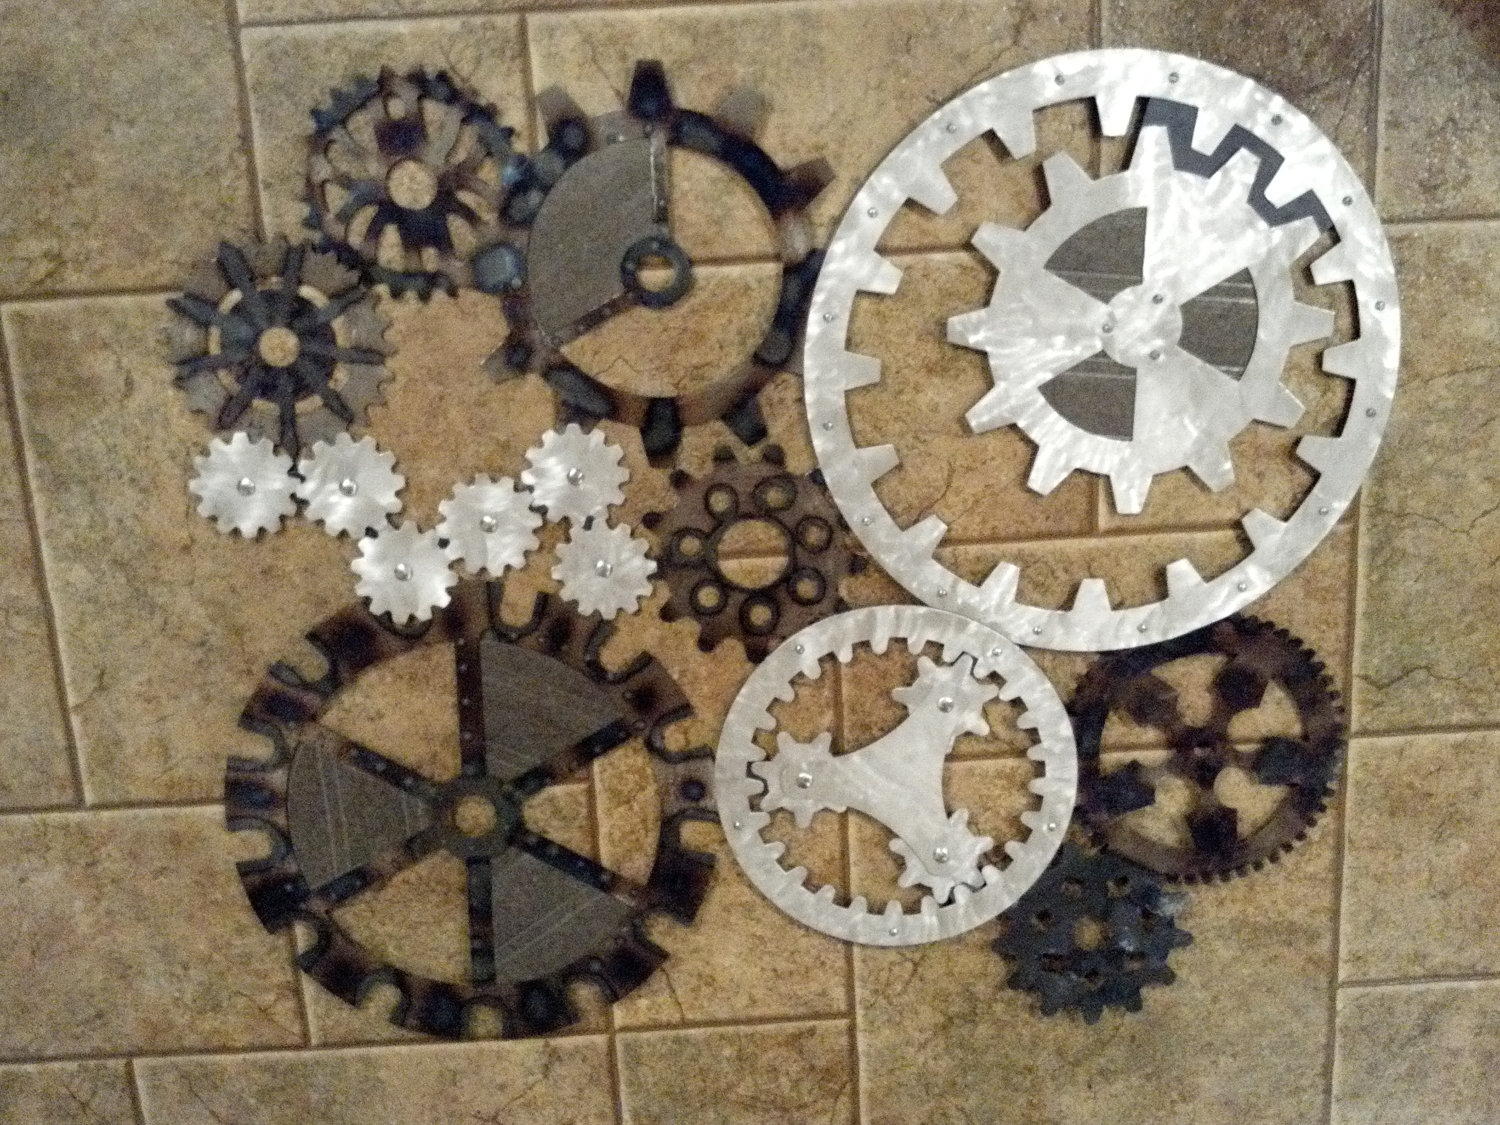 Gears Art Industrial Steampunk Wall Decor Made Darkhorsegarage New Throughout Most Popular Steampunk Wall Art (View 9 of 20)